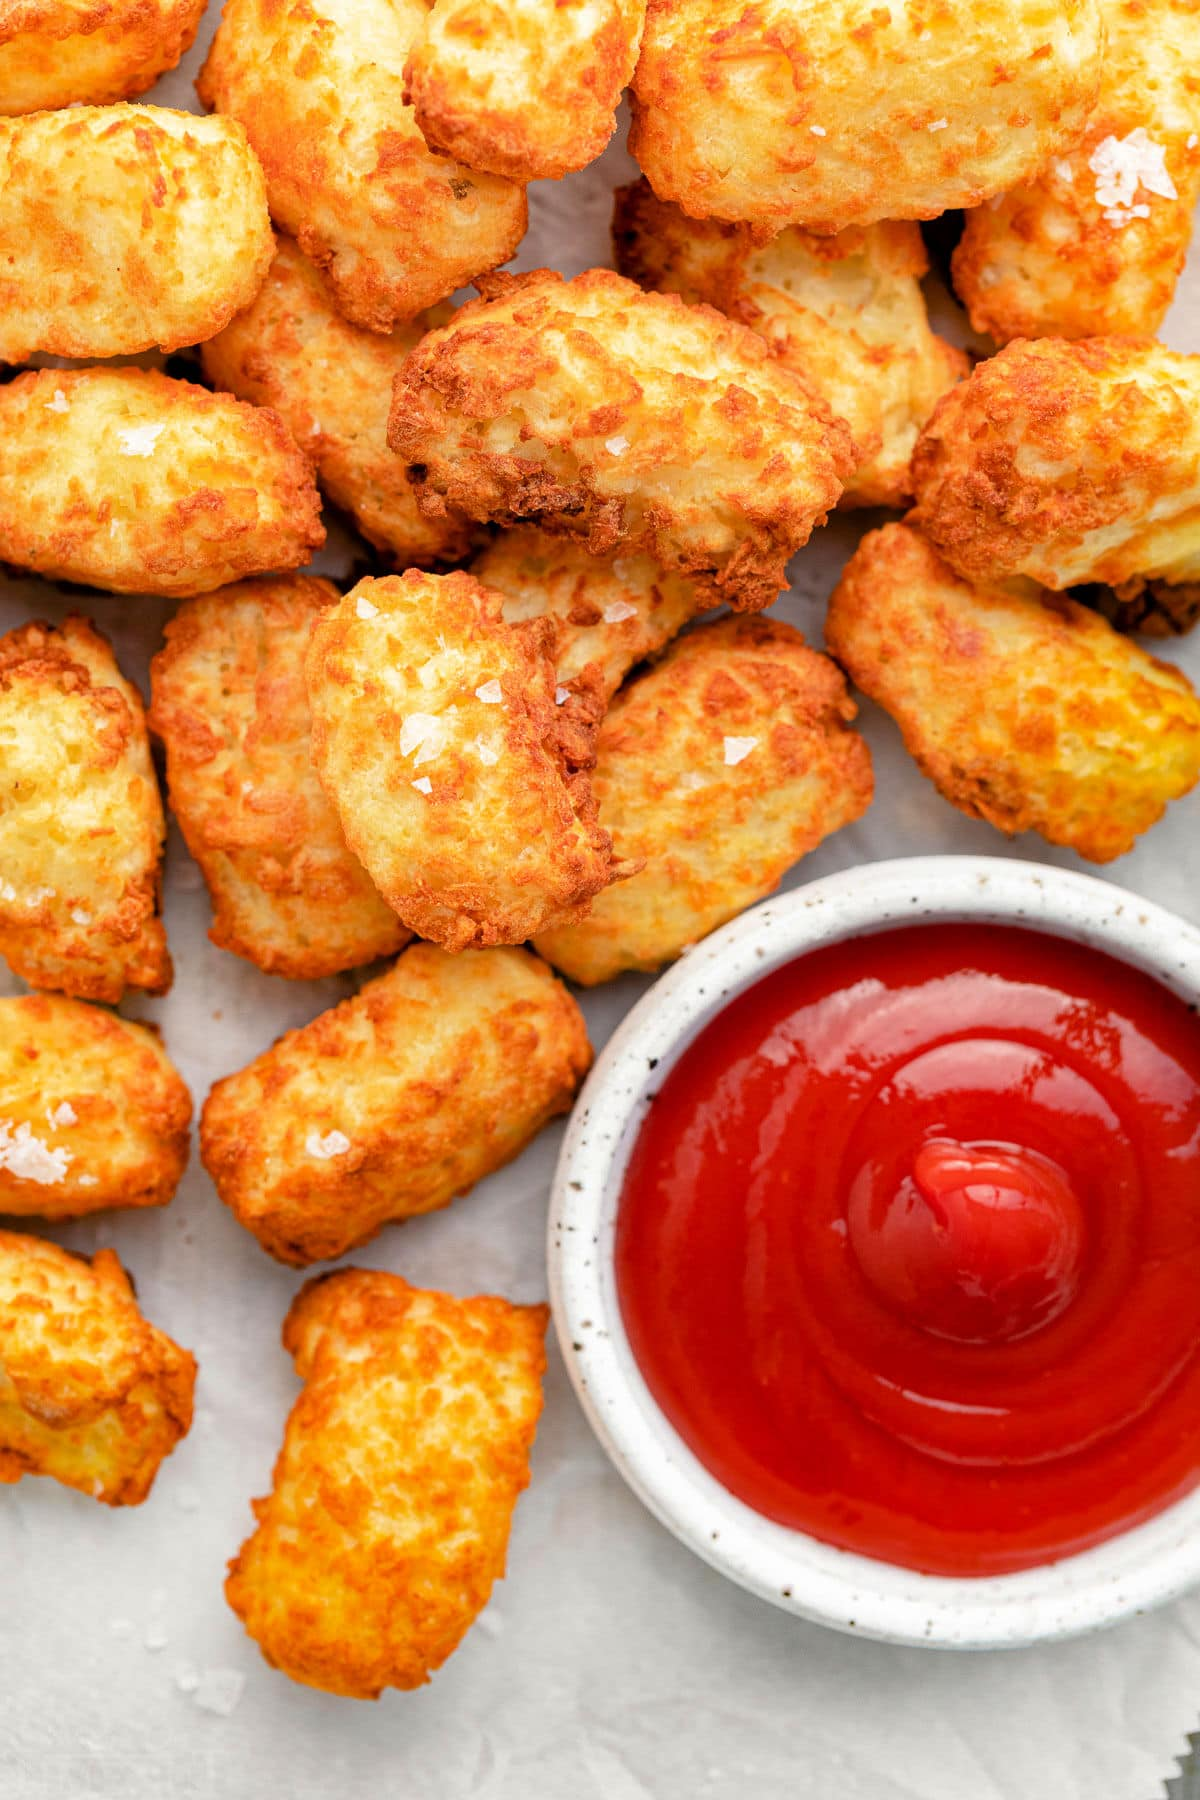 close up of golden crispy tater tots with ketchup.